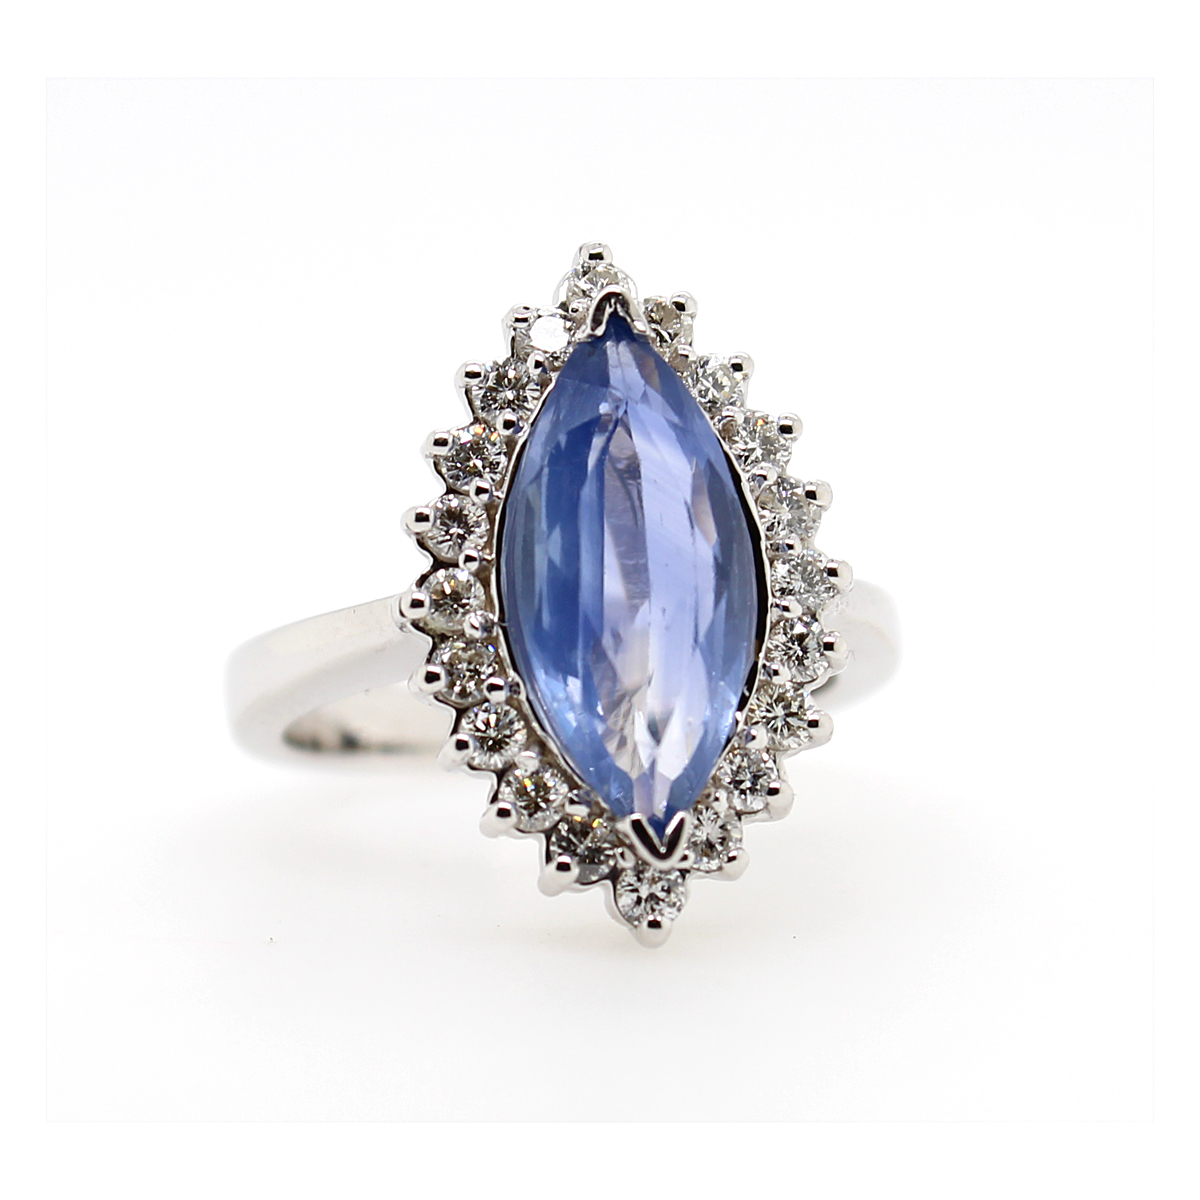 Vintage 18 Karat White Gold Marquise Natural Sapphire and Diamond Ring